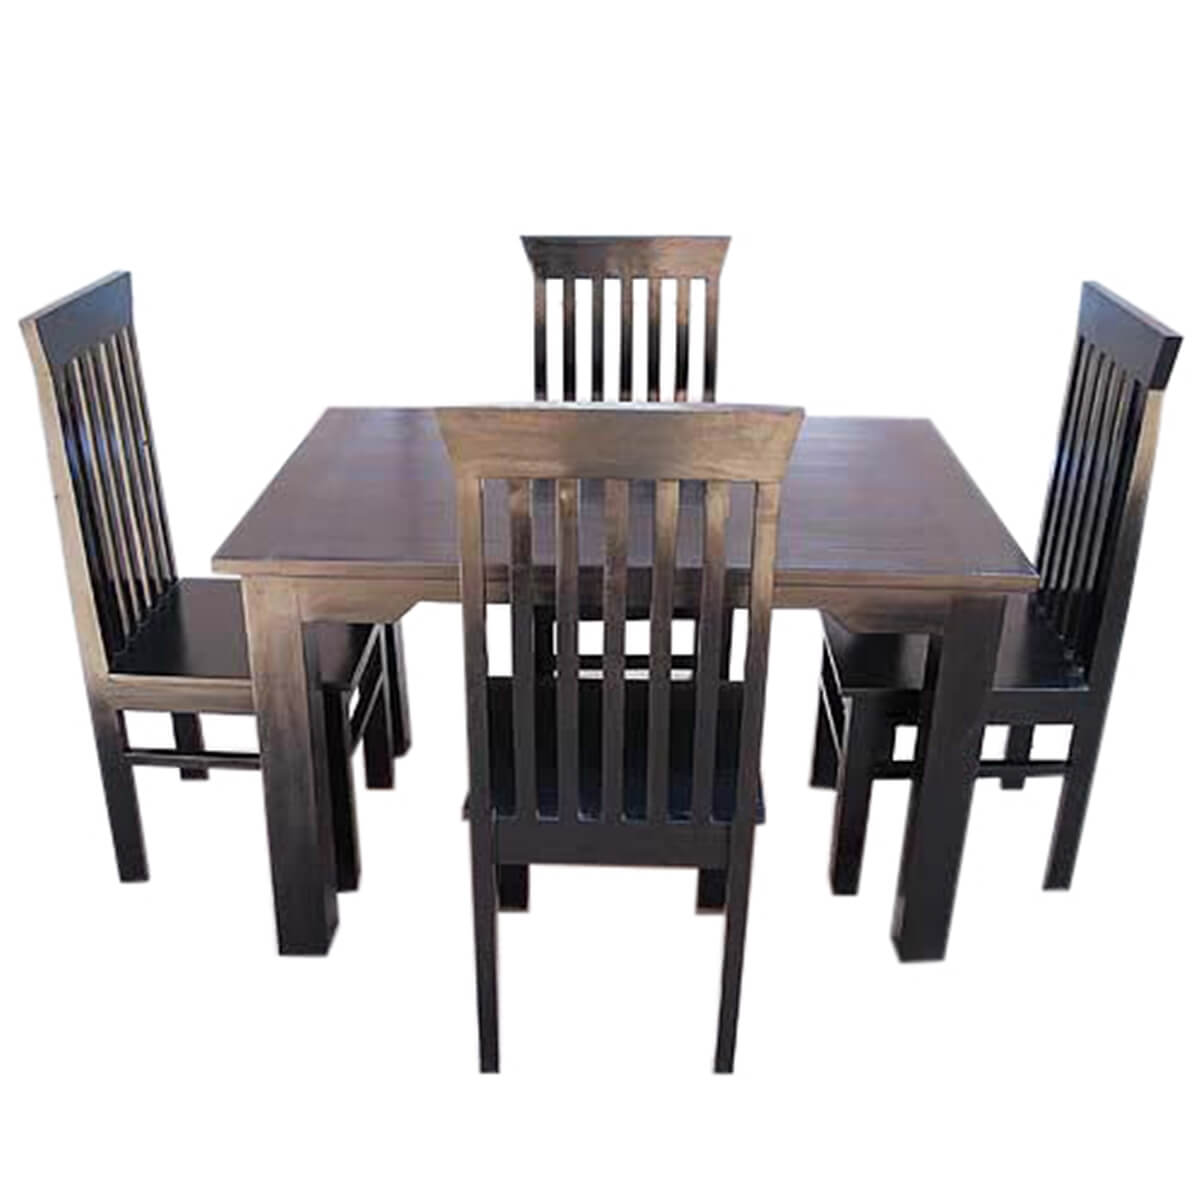 Contemporary lincoln kitchen dining room table chairs set for Kitchen dining room chairs